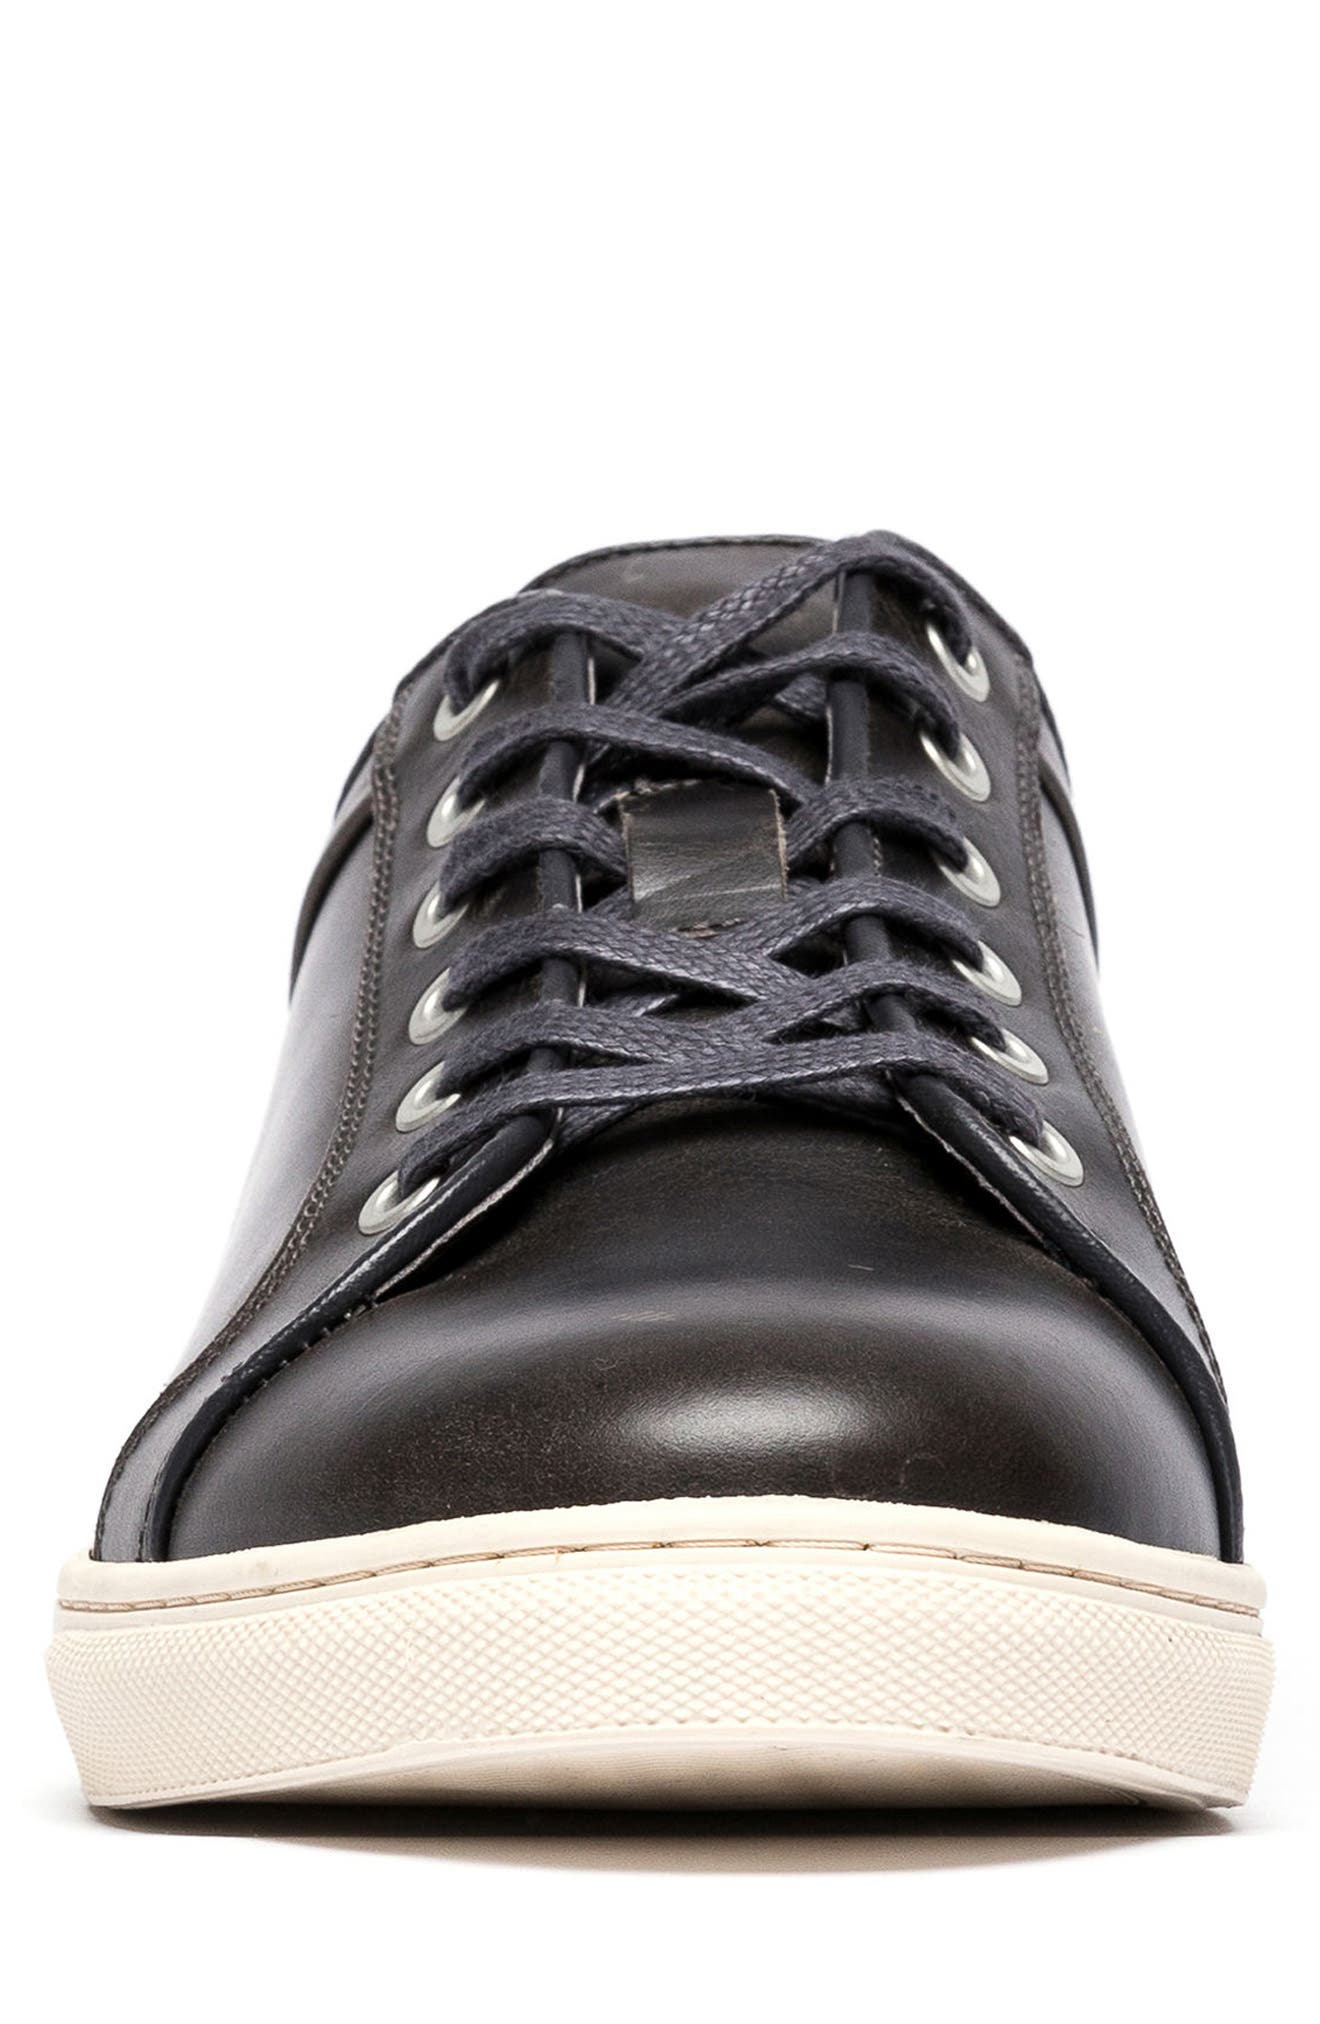 Aria Sneaker,                             Alternate thumbnail 4, color,                             COAL LEATHER